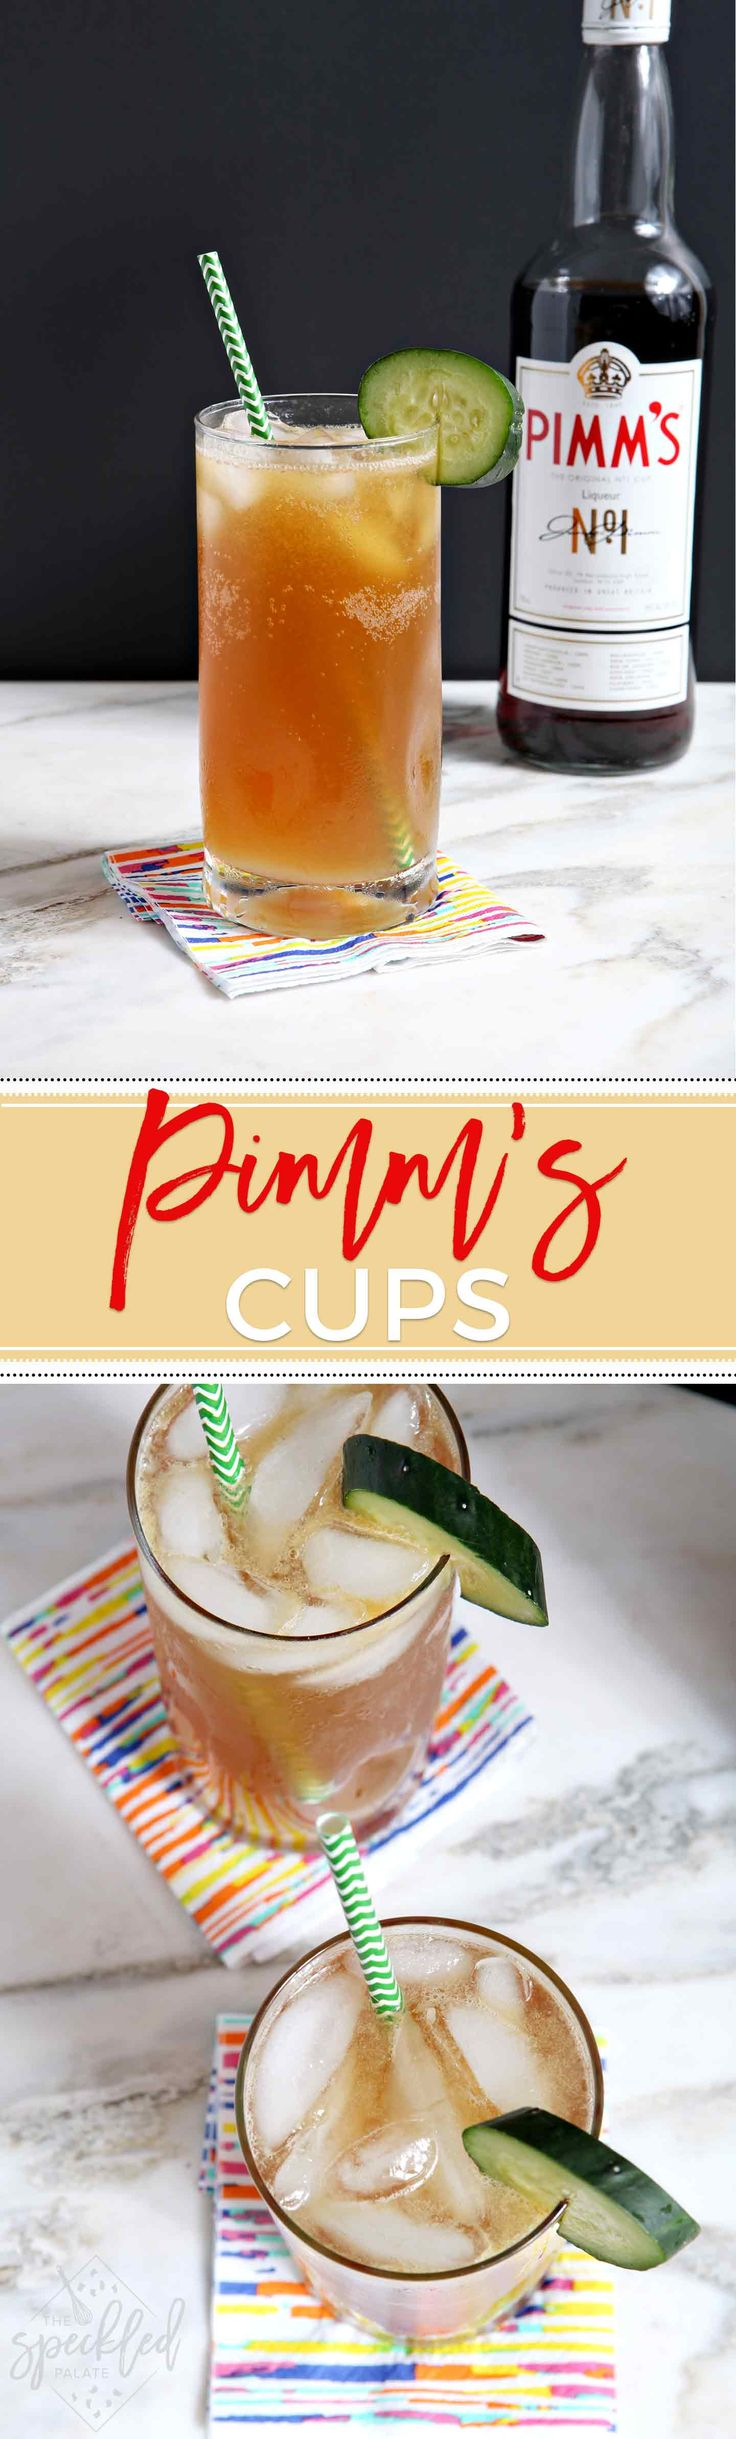 Tart and delicious, the Pimm's Cup is a classic New Orleans cocktail that is perfect for summertime sipping! #cocktail #recipe